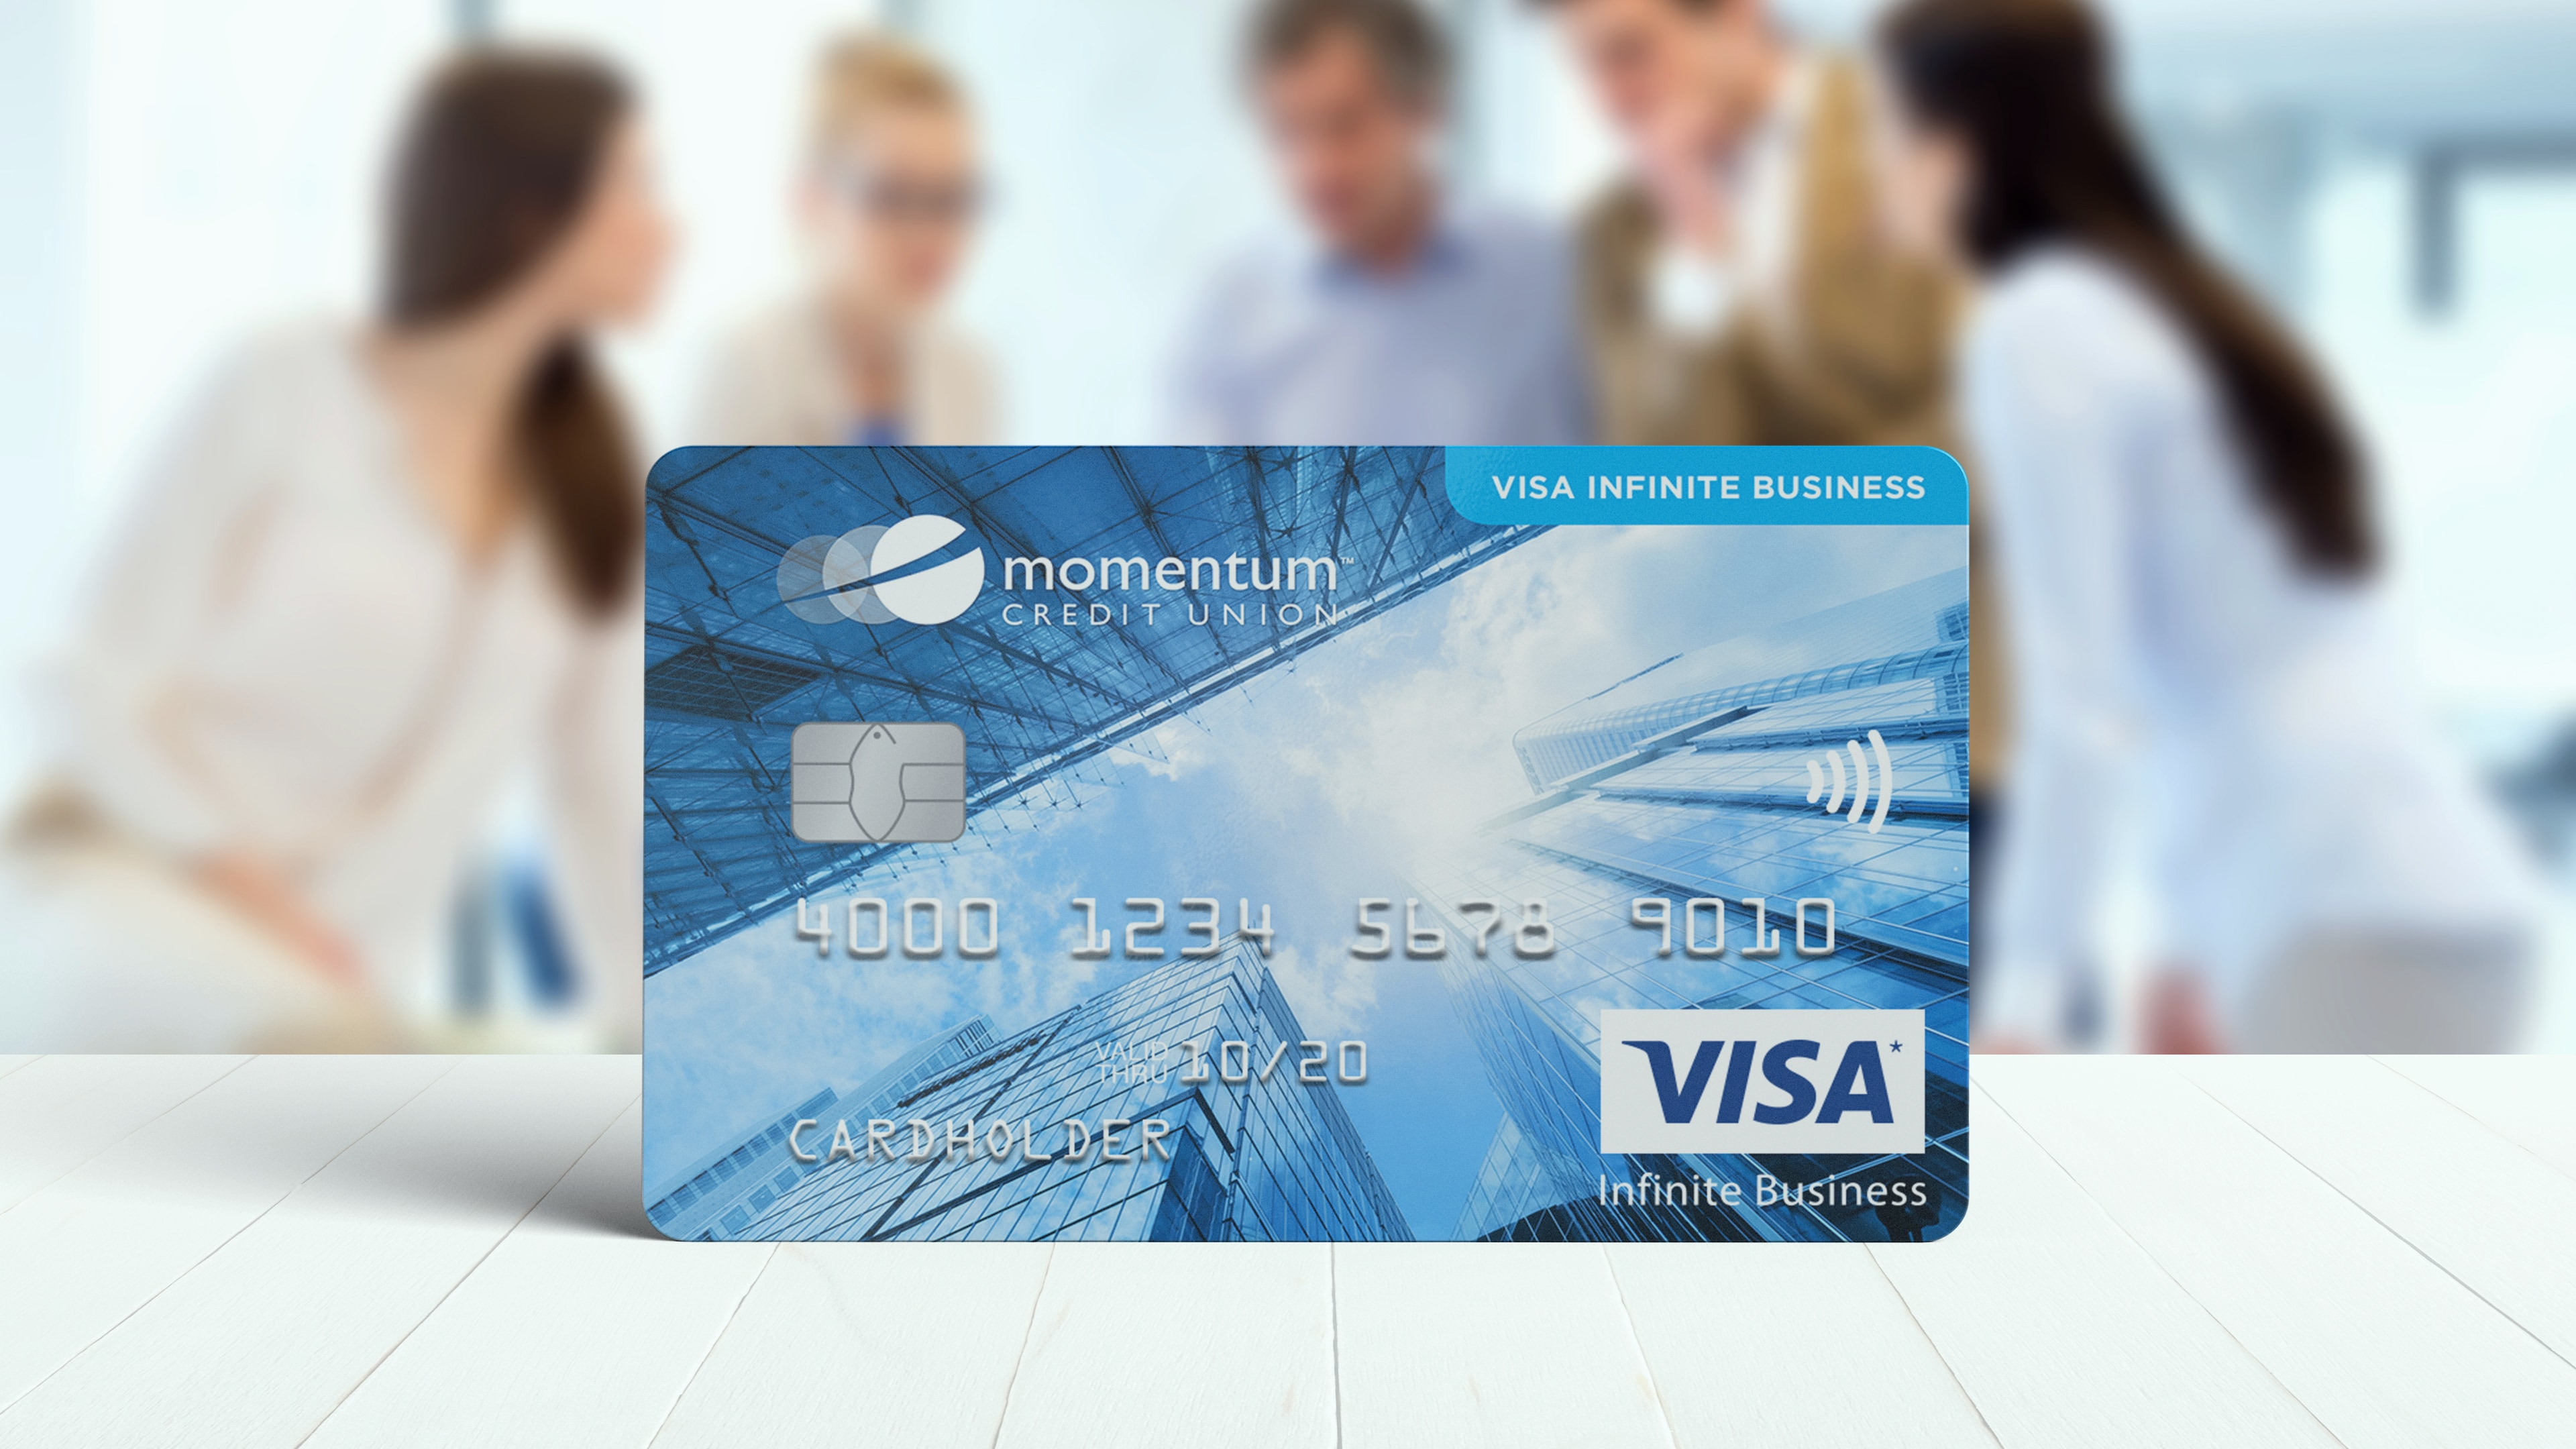 Momentum Visa Infinite Business